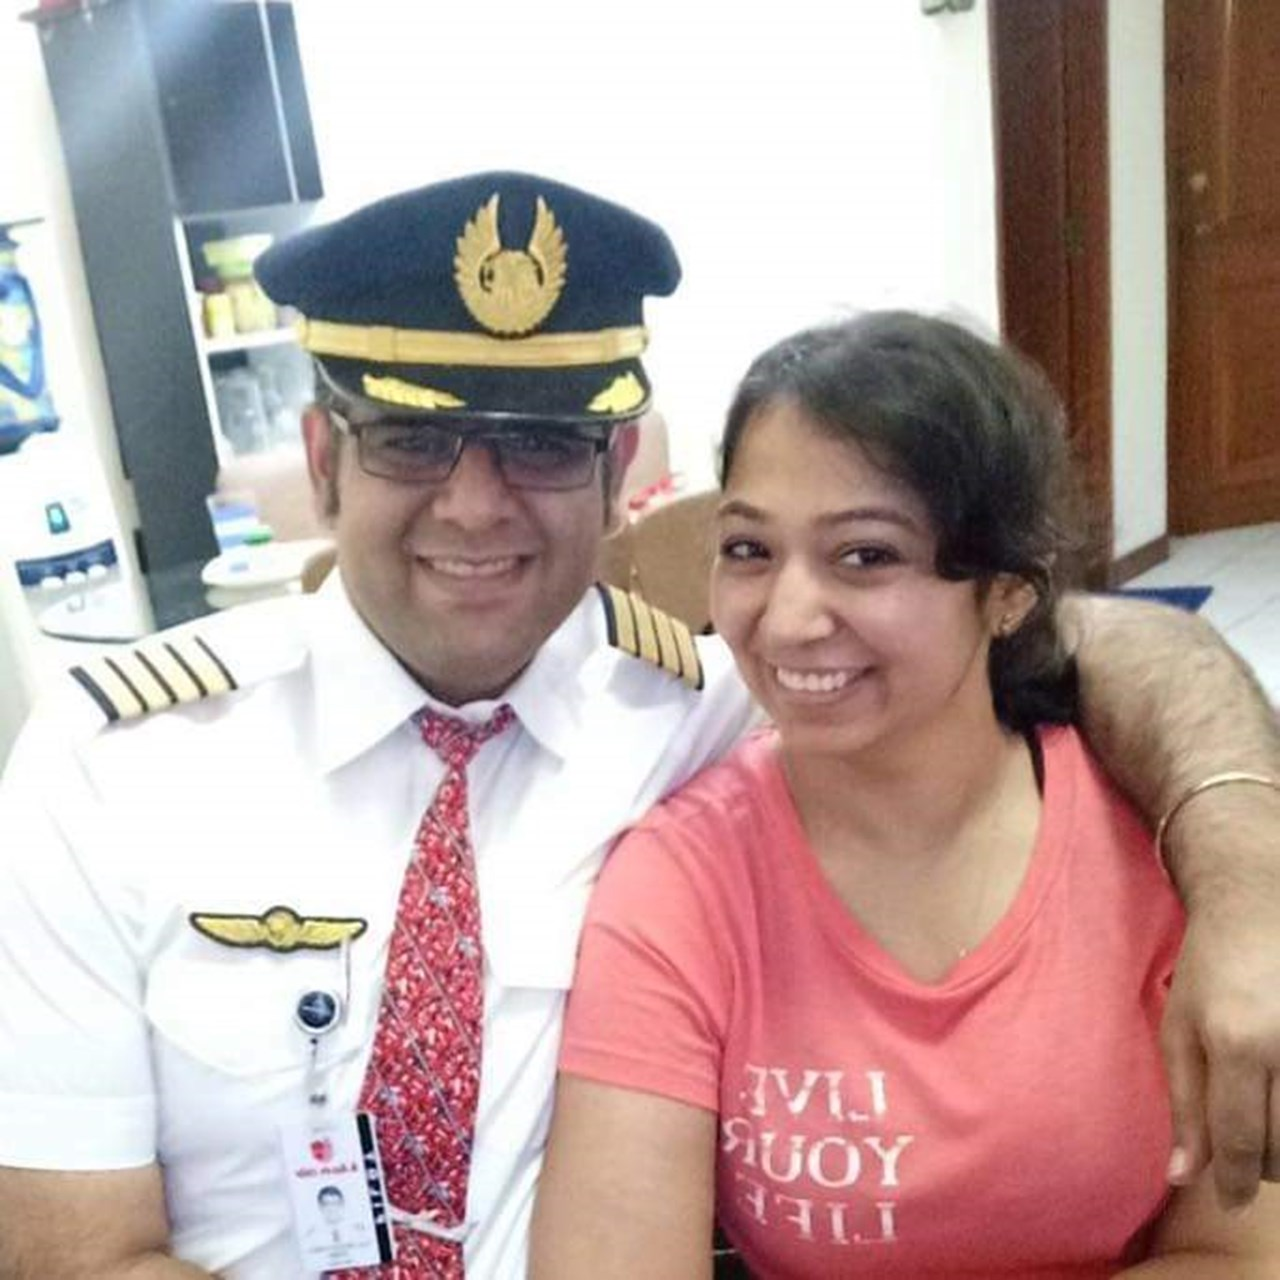 Bhavye Suneja was a 'great pilot', remembers colleague